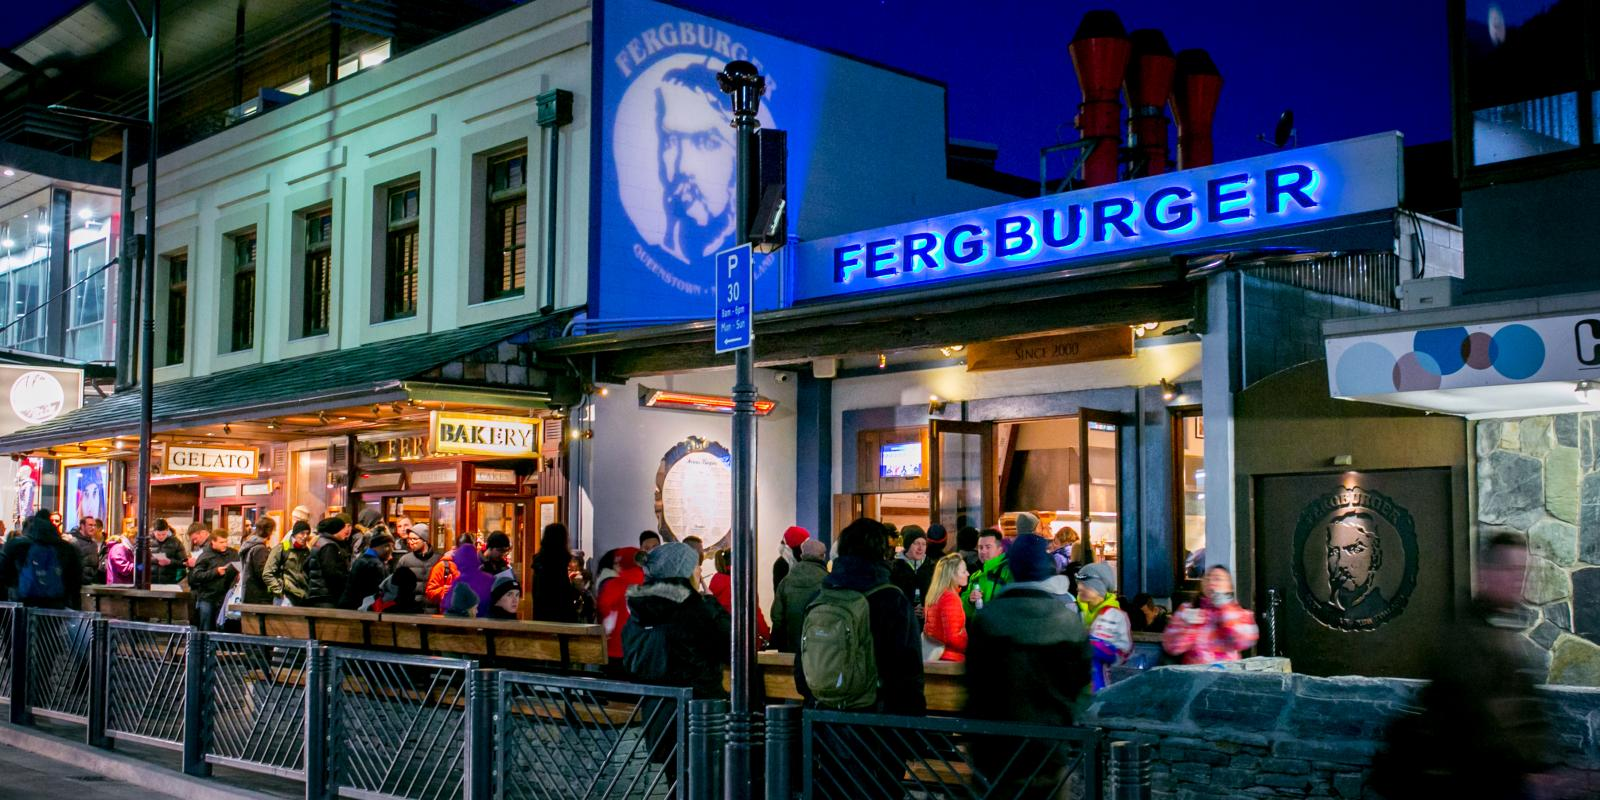 Fergburger at night